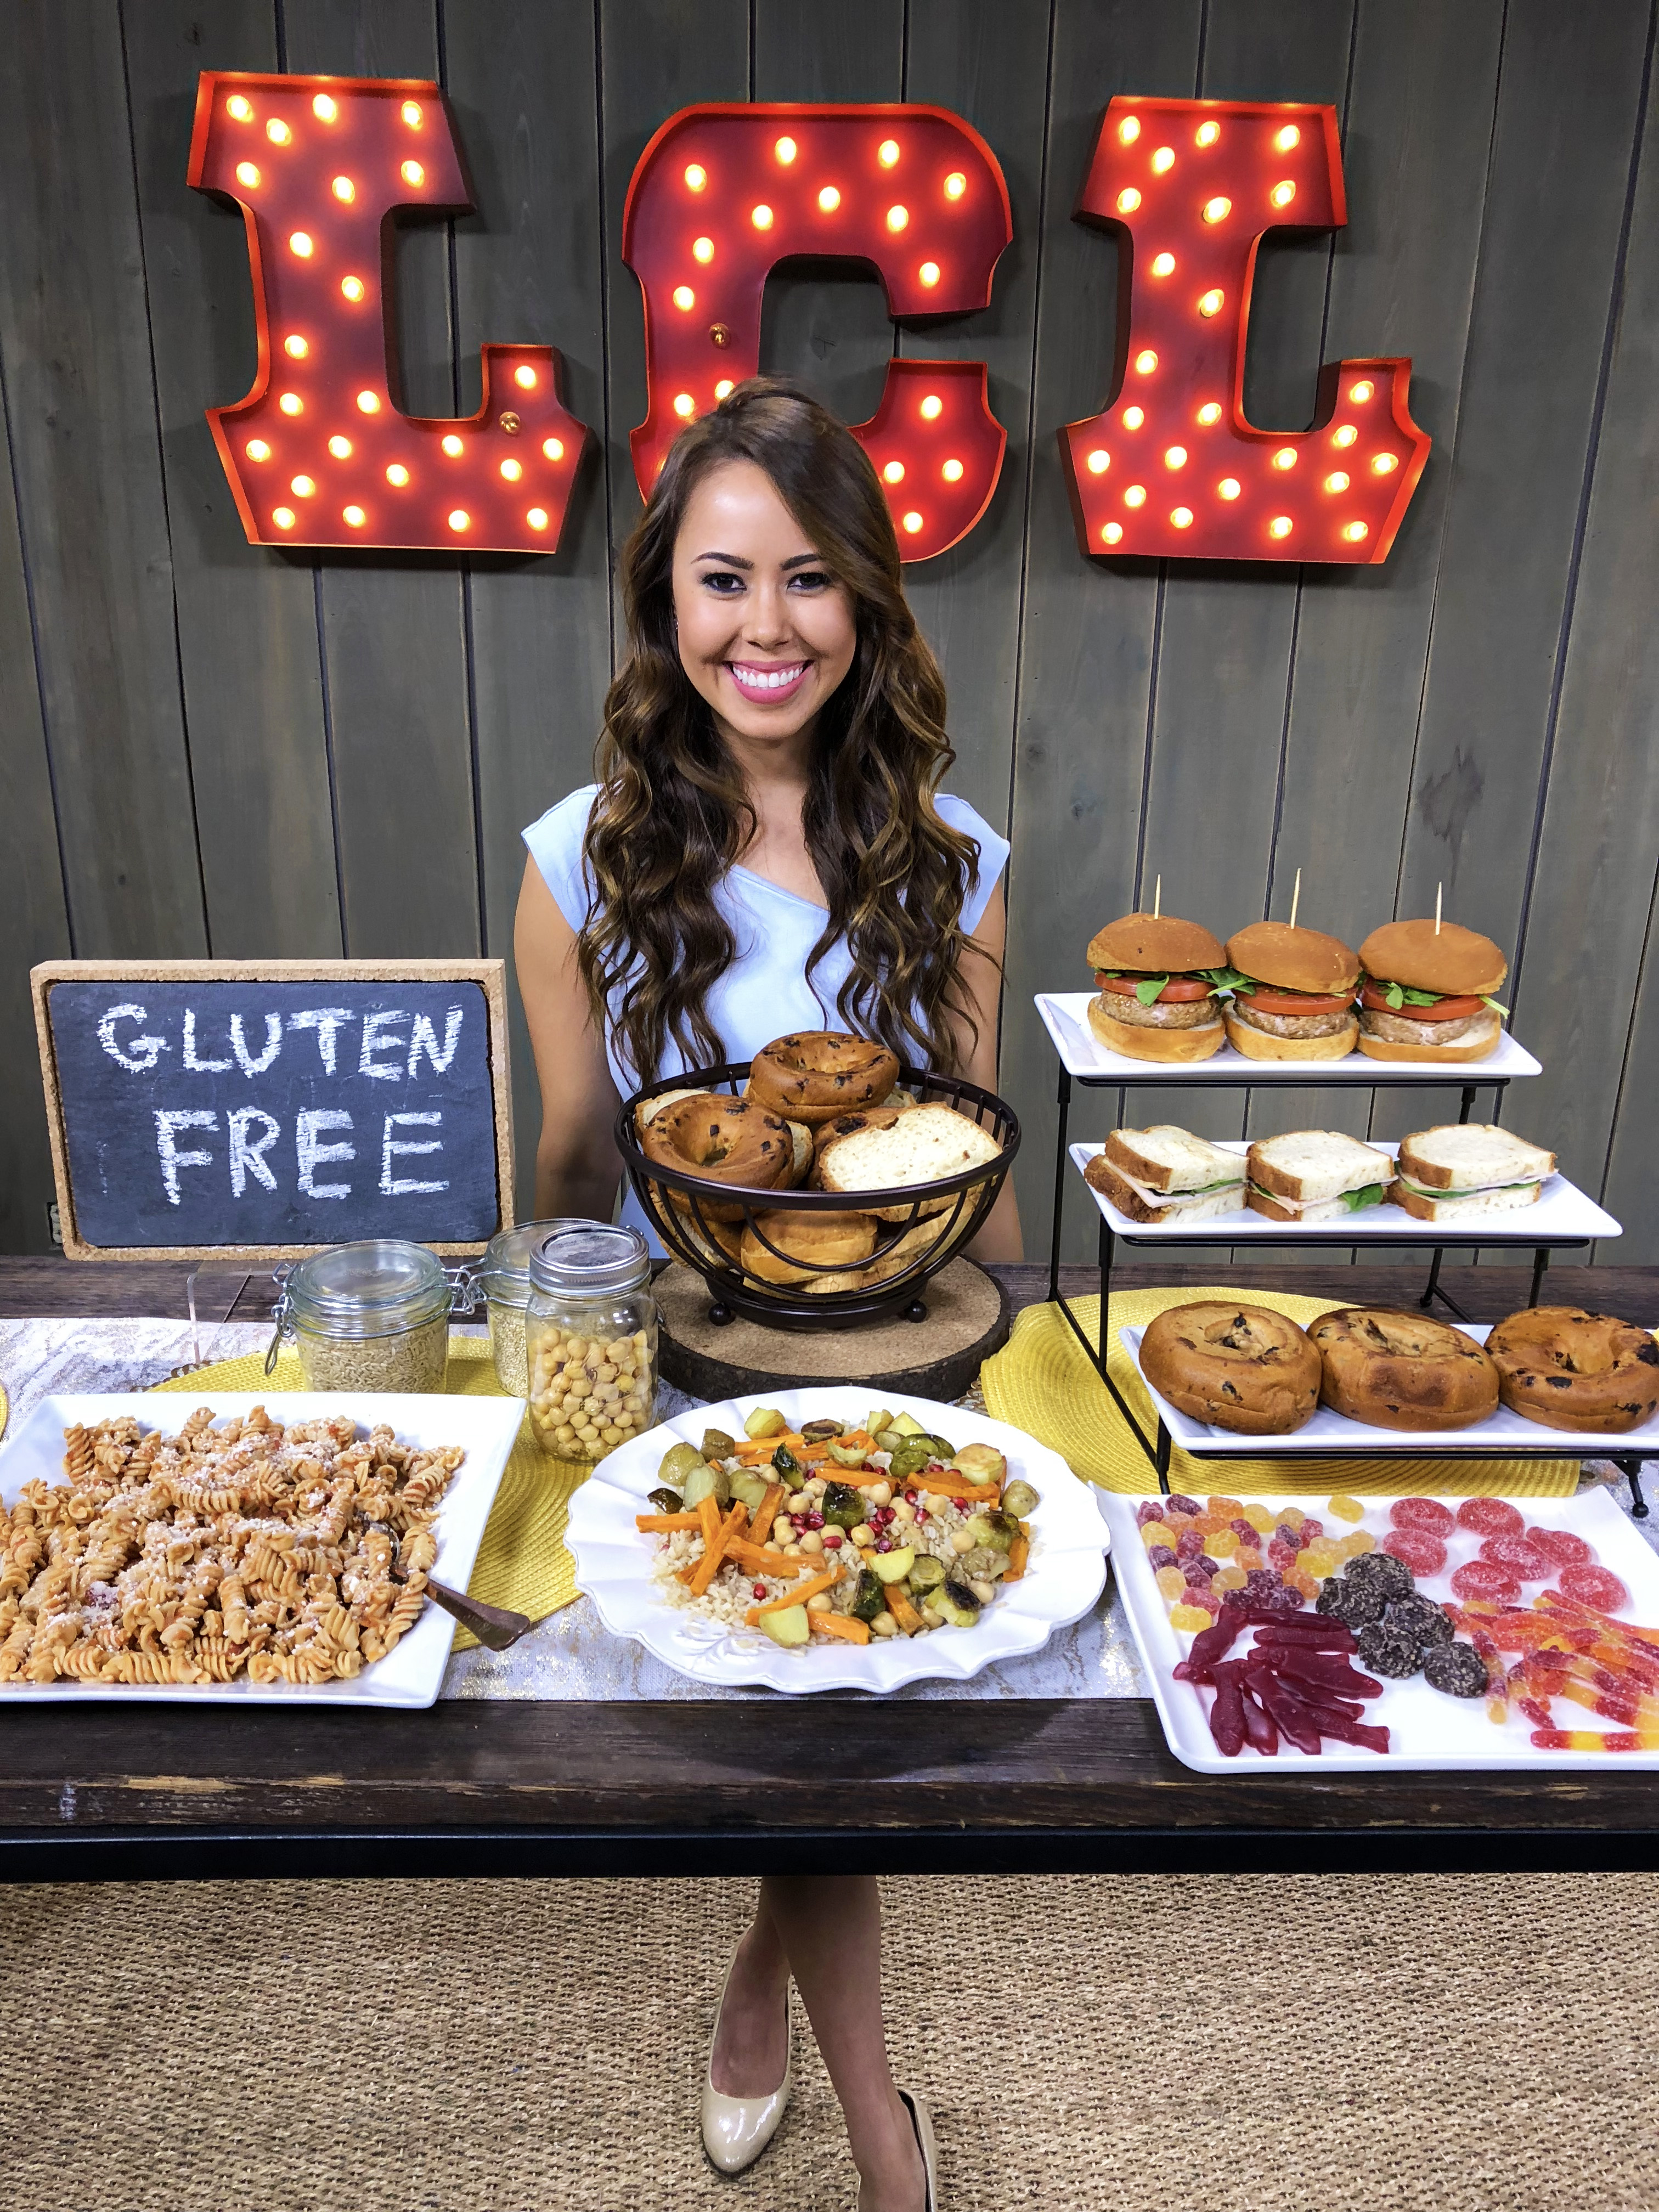 National Gluten Free Day ABC Dietitian Nutritionist TV Tolerant Legume Pasta, HunnyBon Sweets, Canyon Bakehouse, Dunya Harvest